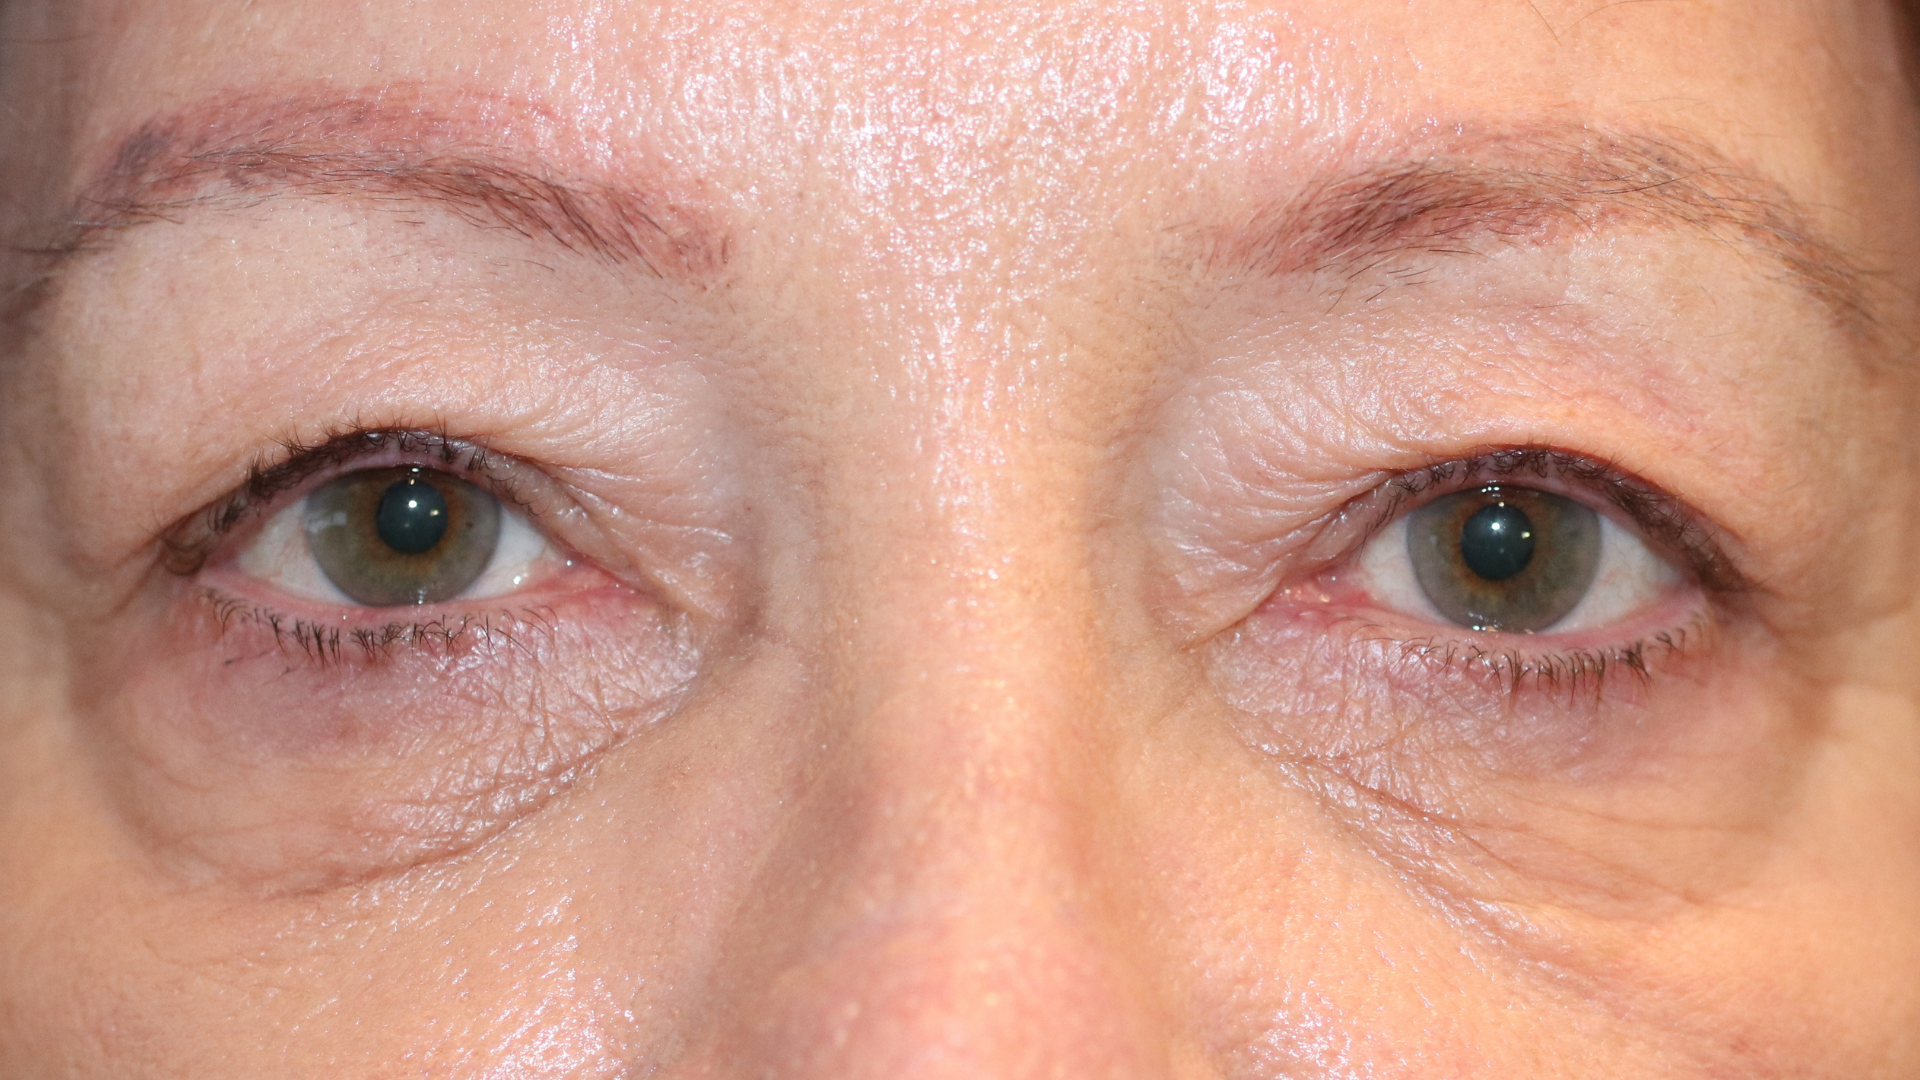 Blepharoplasty Upper eyelid surgery image depicting excess skin on the upper eyelid. Sydney Oculoplastic surgeon Dr Anthony Maloof can restore a youthful and fresh appearance.